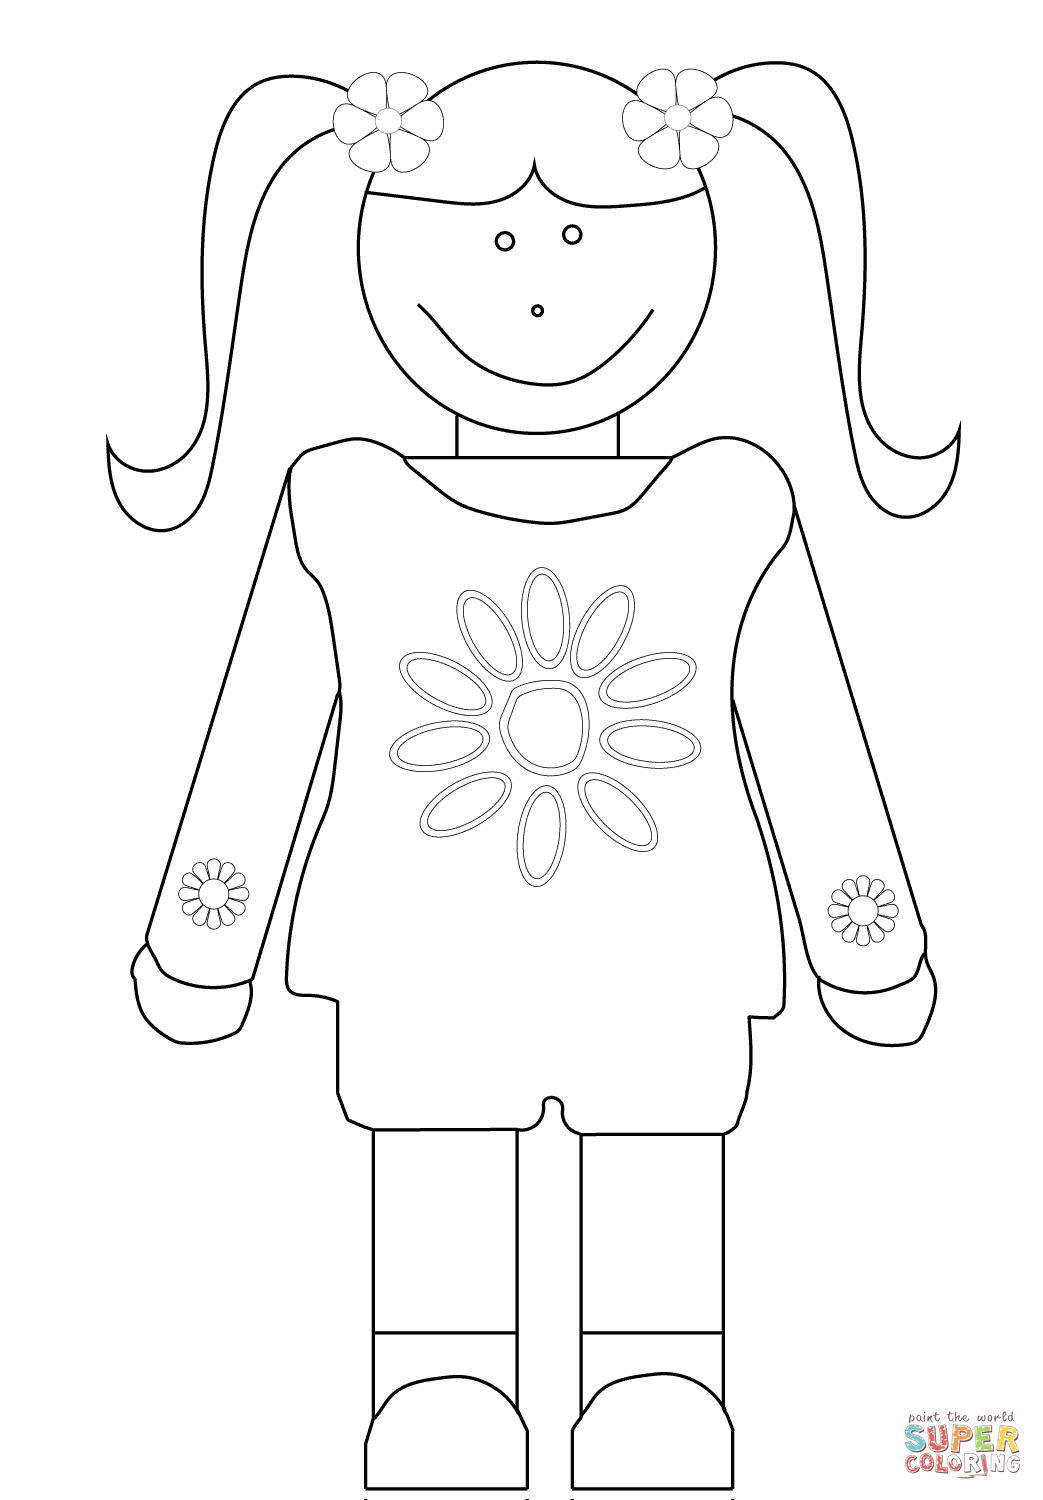 International Girl Guide Coloring Pages - MakingFriends | 1500x1043